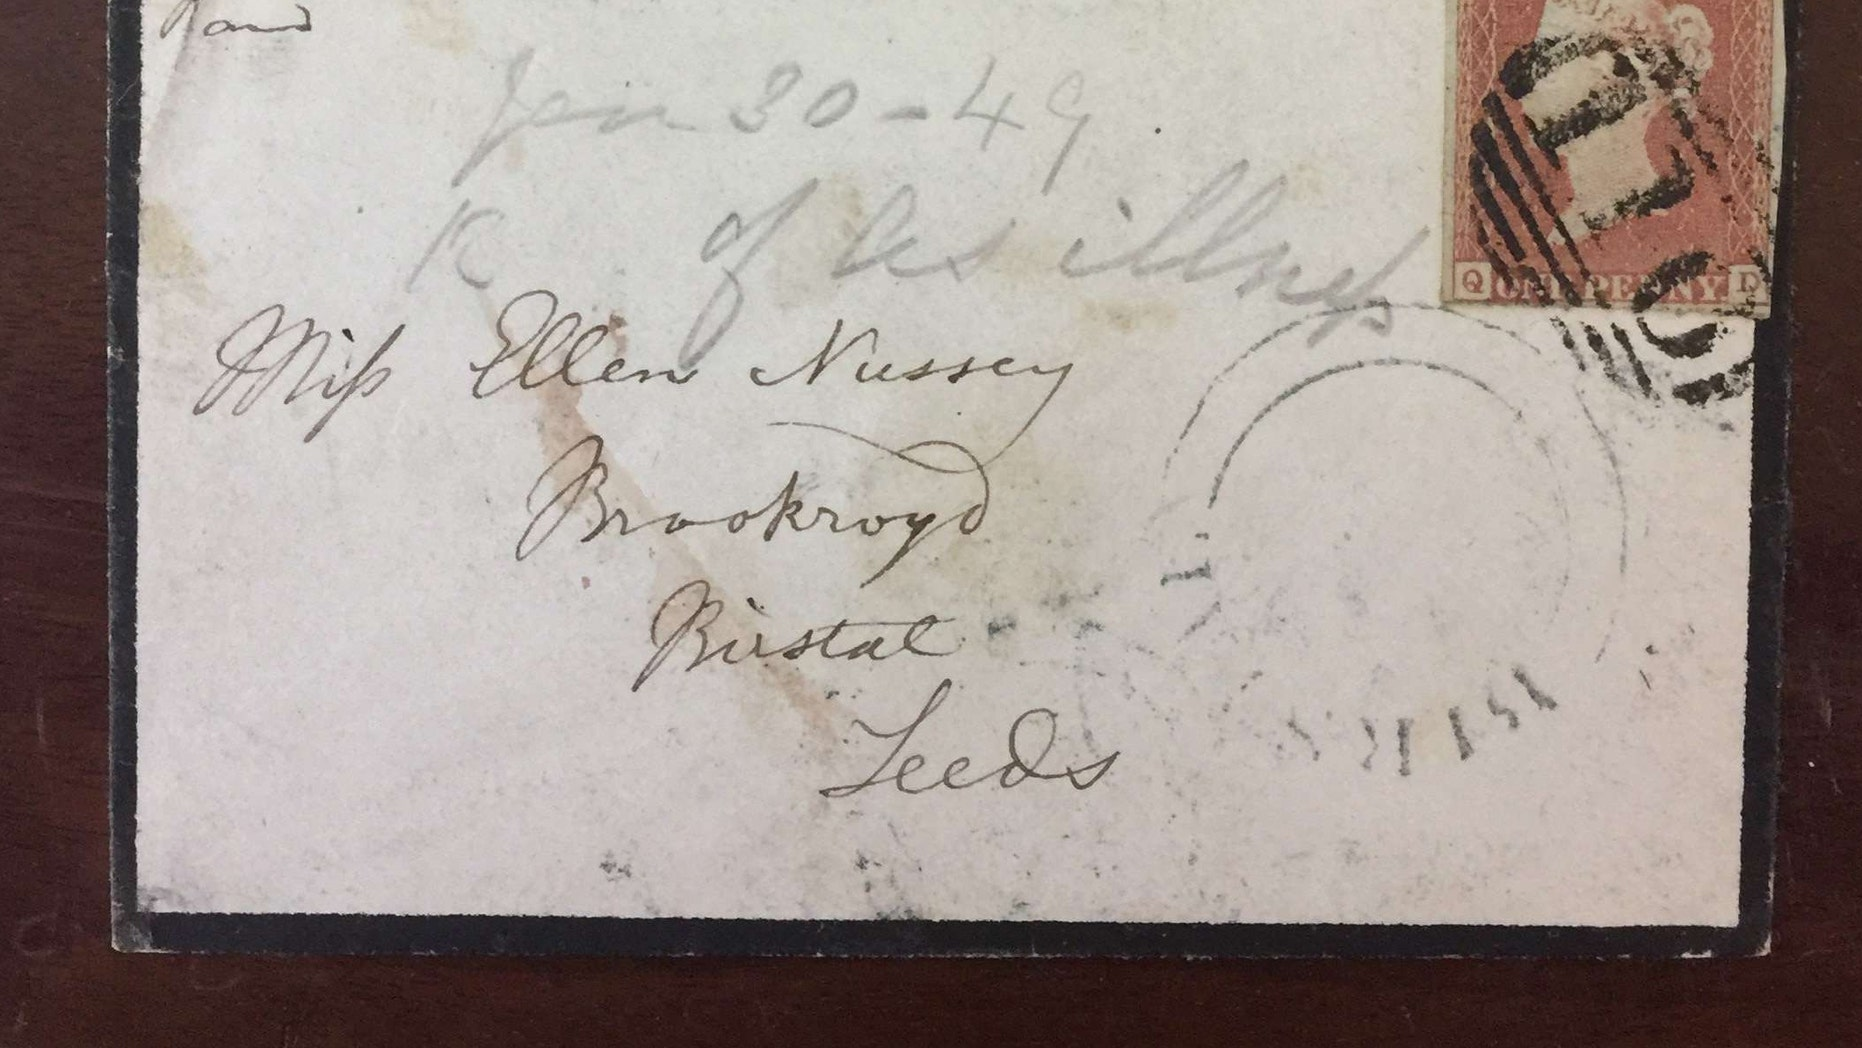 The envelope addressed to Bronte's friend Ellen Nussey postmarked Jan. 30, 1849 (Henry Aldridge & Son).